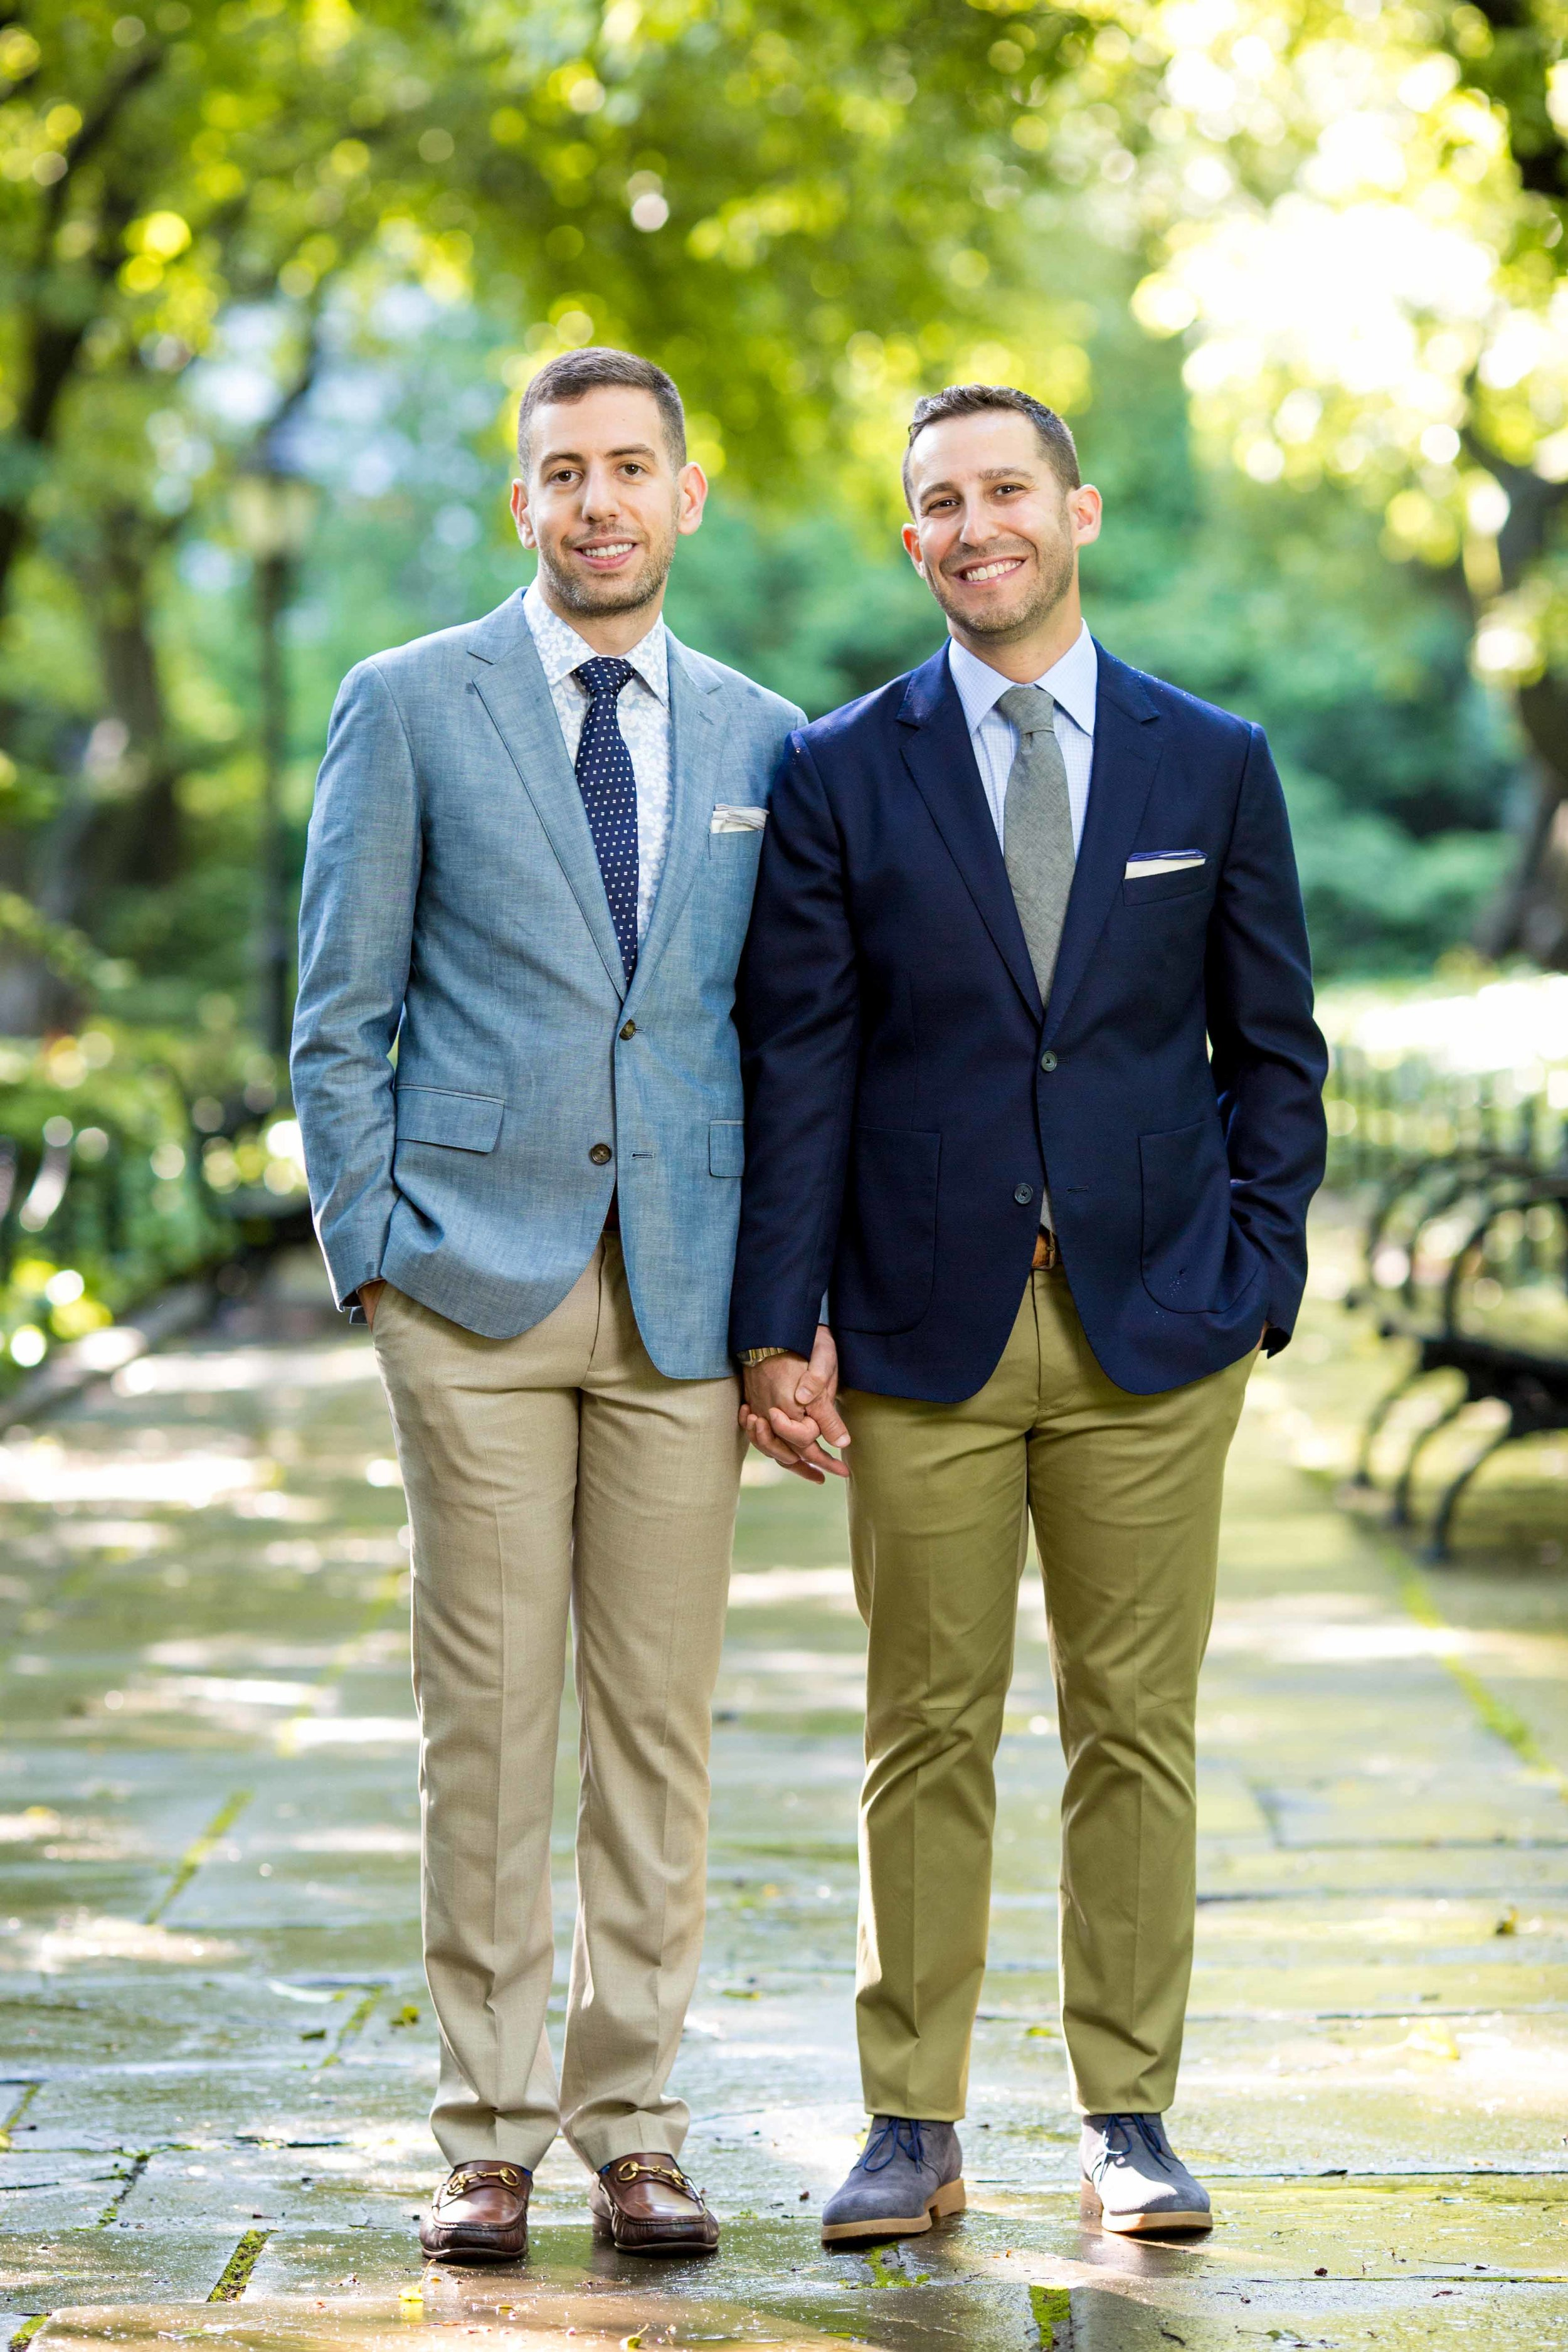 New York City NYC Wedding Photographer Engagement Photo Session Shoot Same Sex Gay Central Park Conservatory Garden